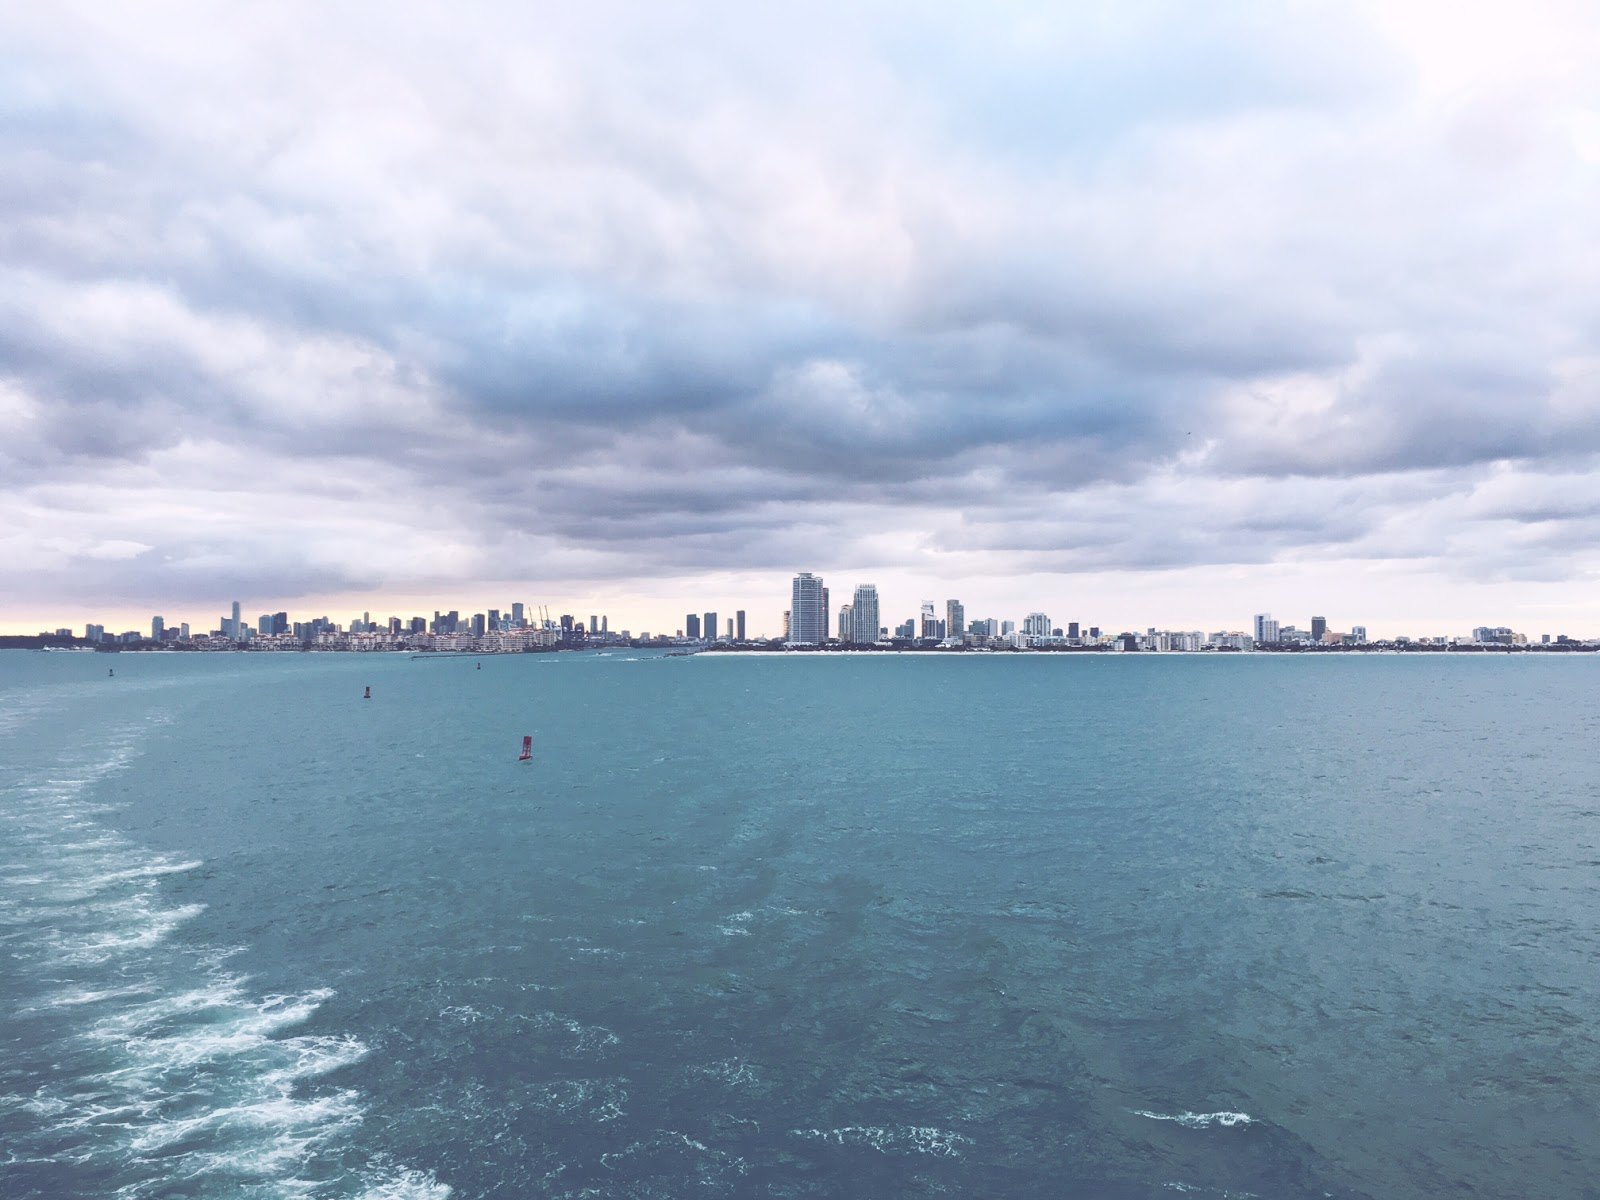 Leaving Miami, Florida on Carnival Glory for 7-day Eastern Caribbean cruise